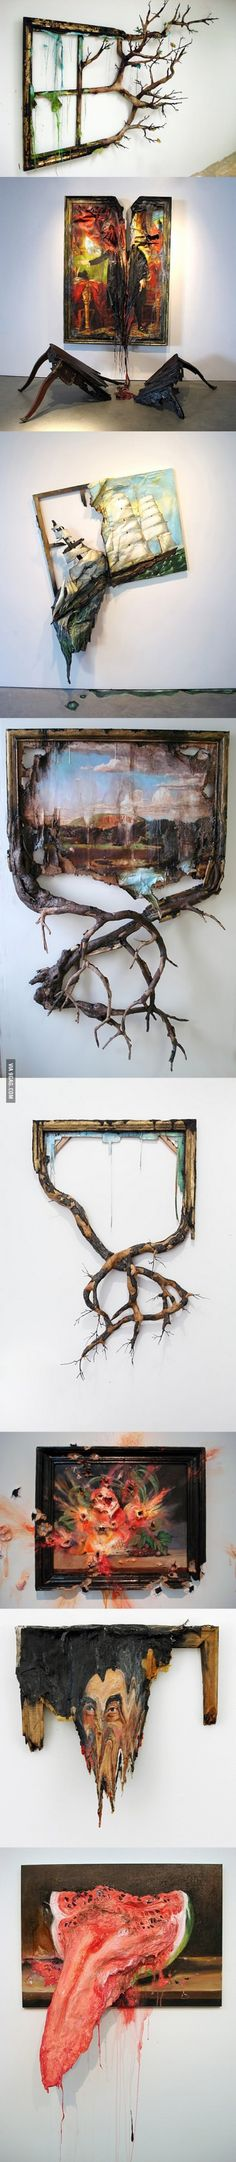 """Valerie Hegarty - """"Decaying"""" Paintings - http://www.x-lols.com/memes/valerie-hegarty-decaying-paintings/"""